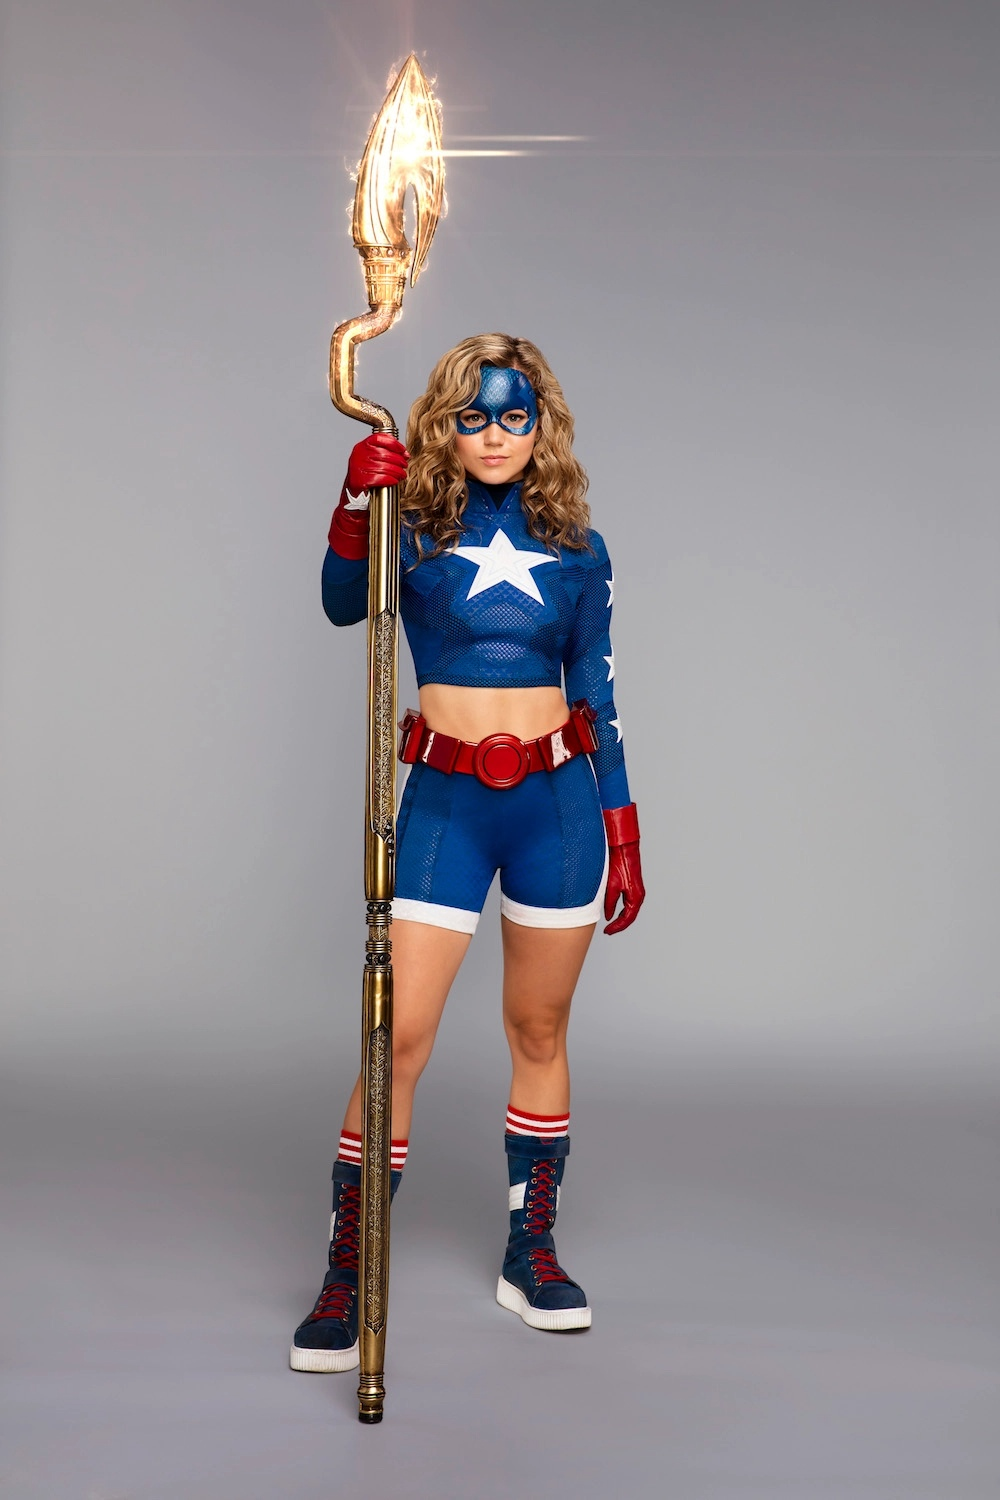 Courtney Whitmore (Stargirl TV Series)